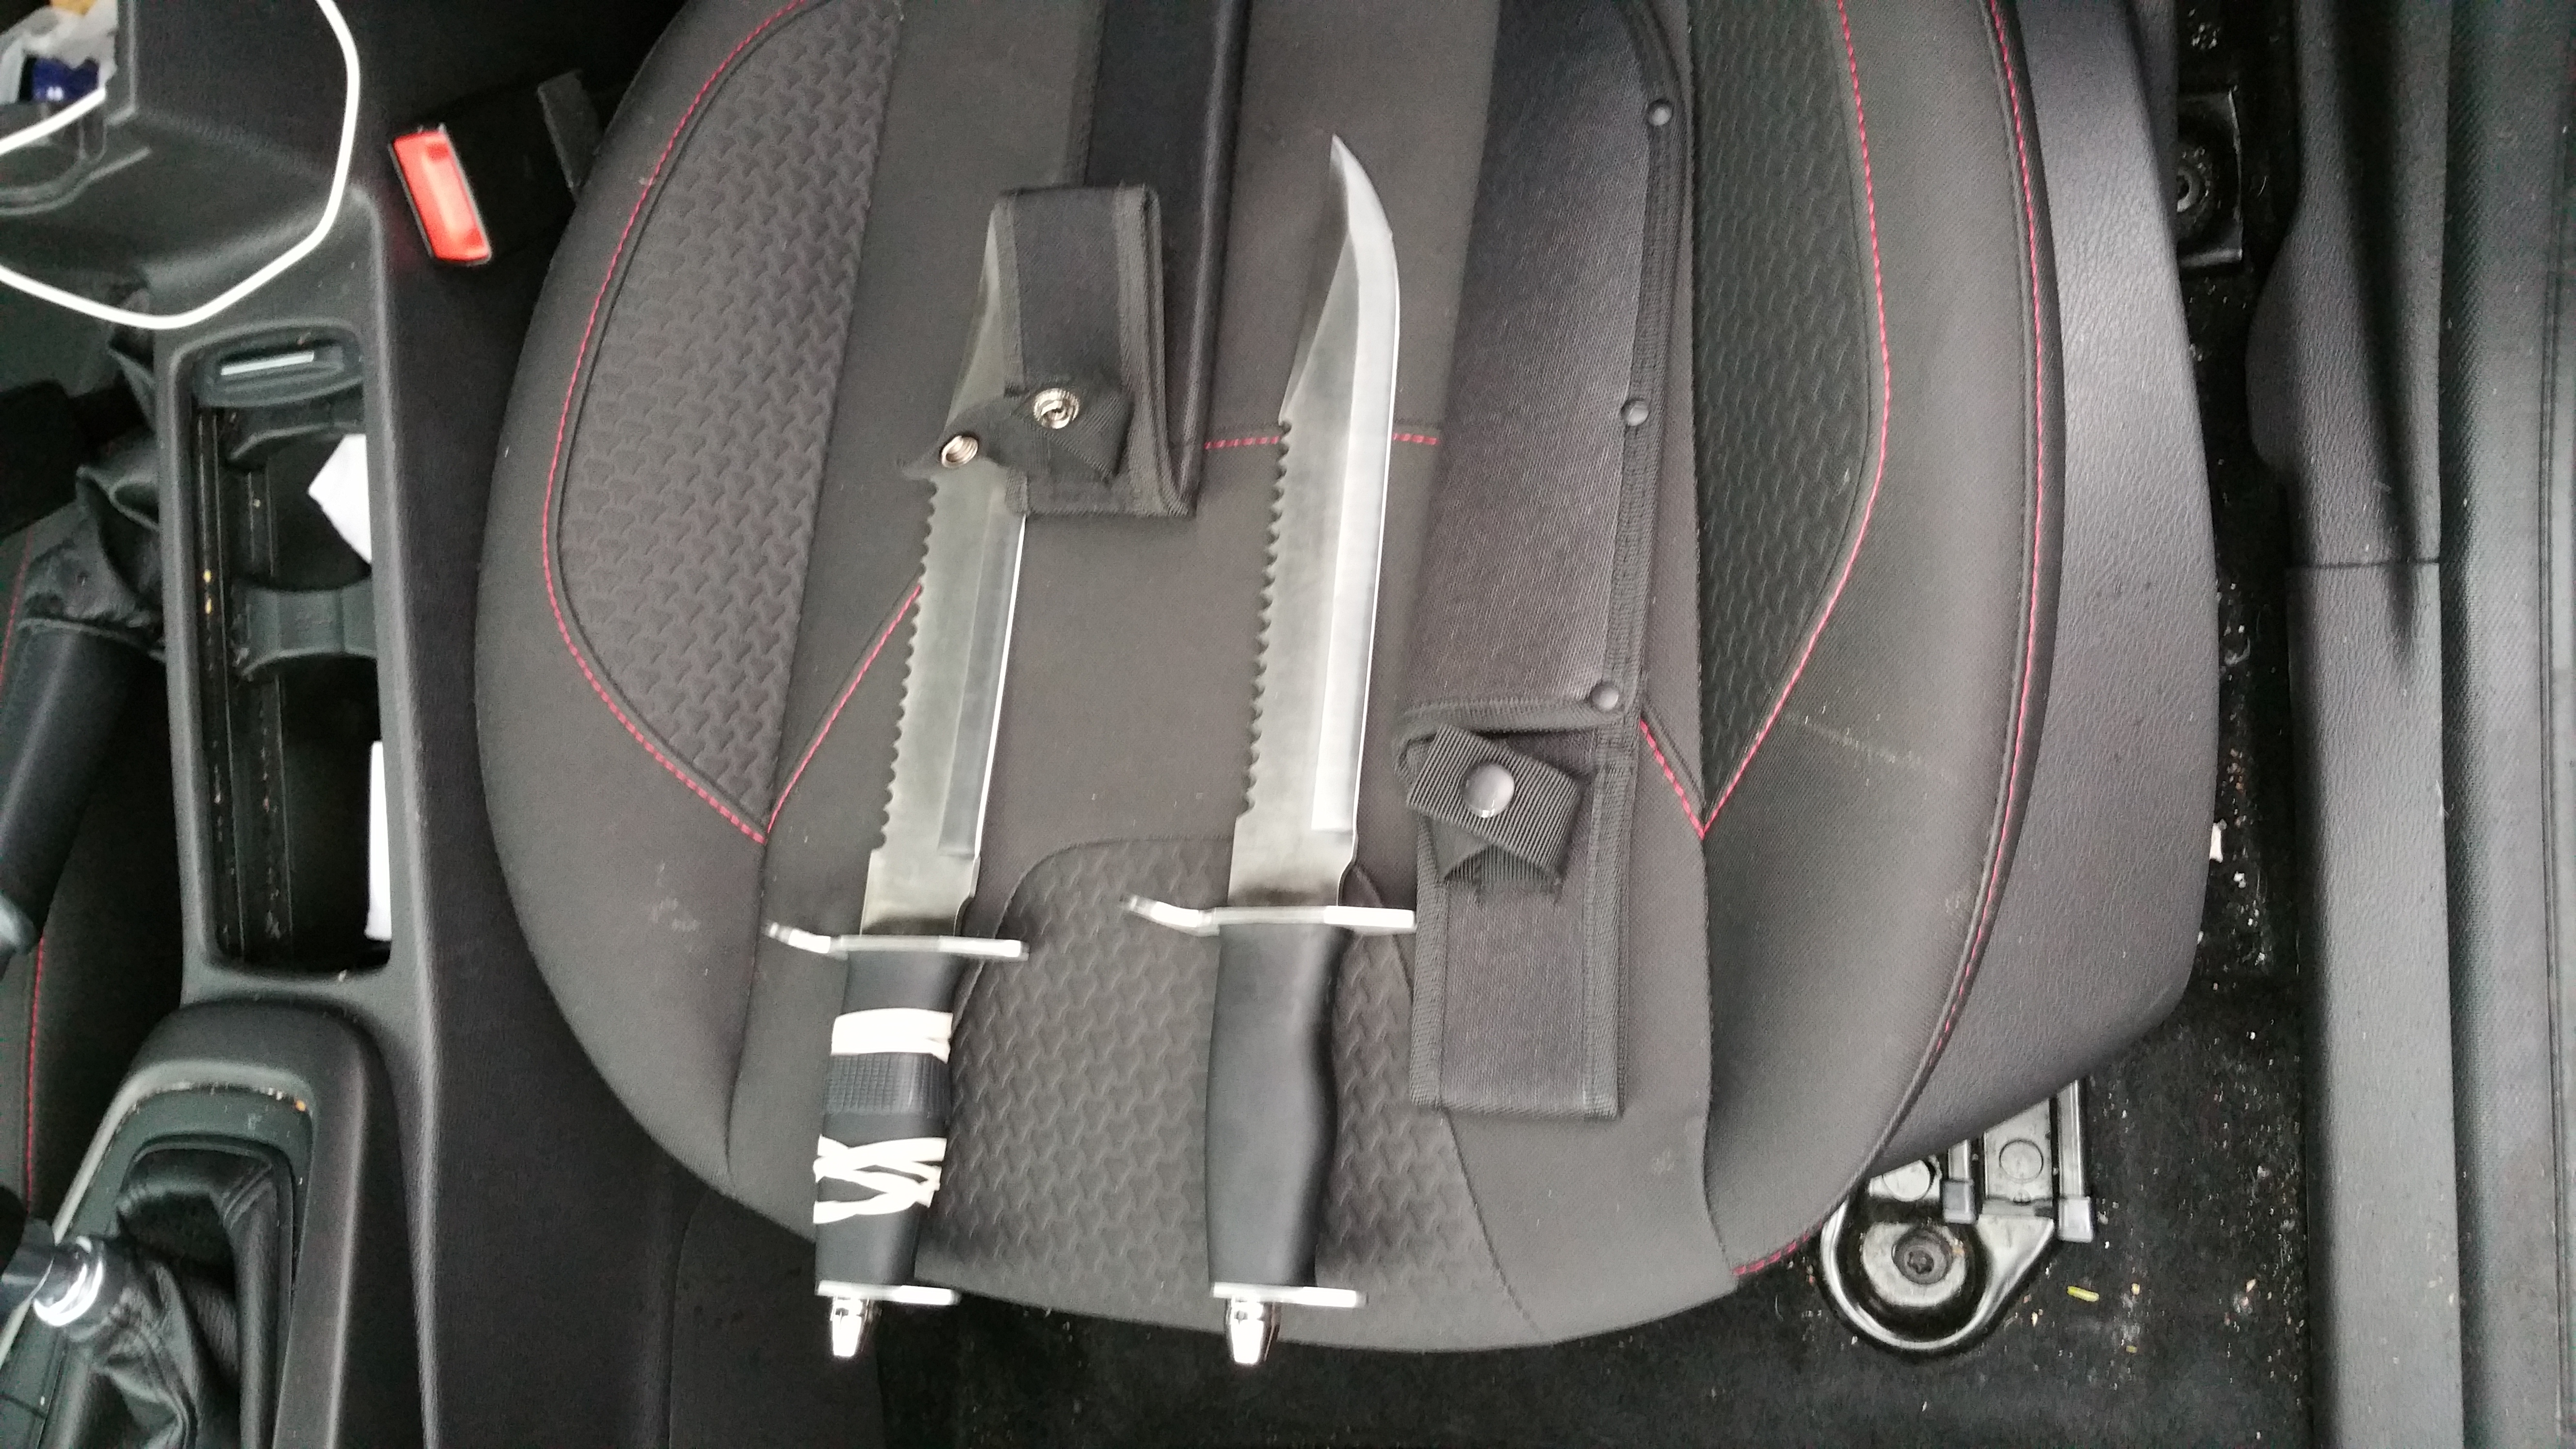 Knives recovered from stolen vehicle.jpg